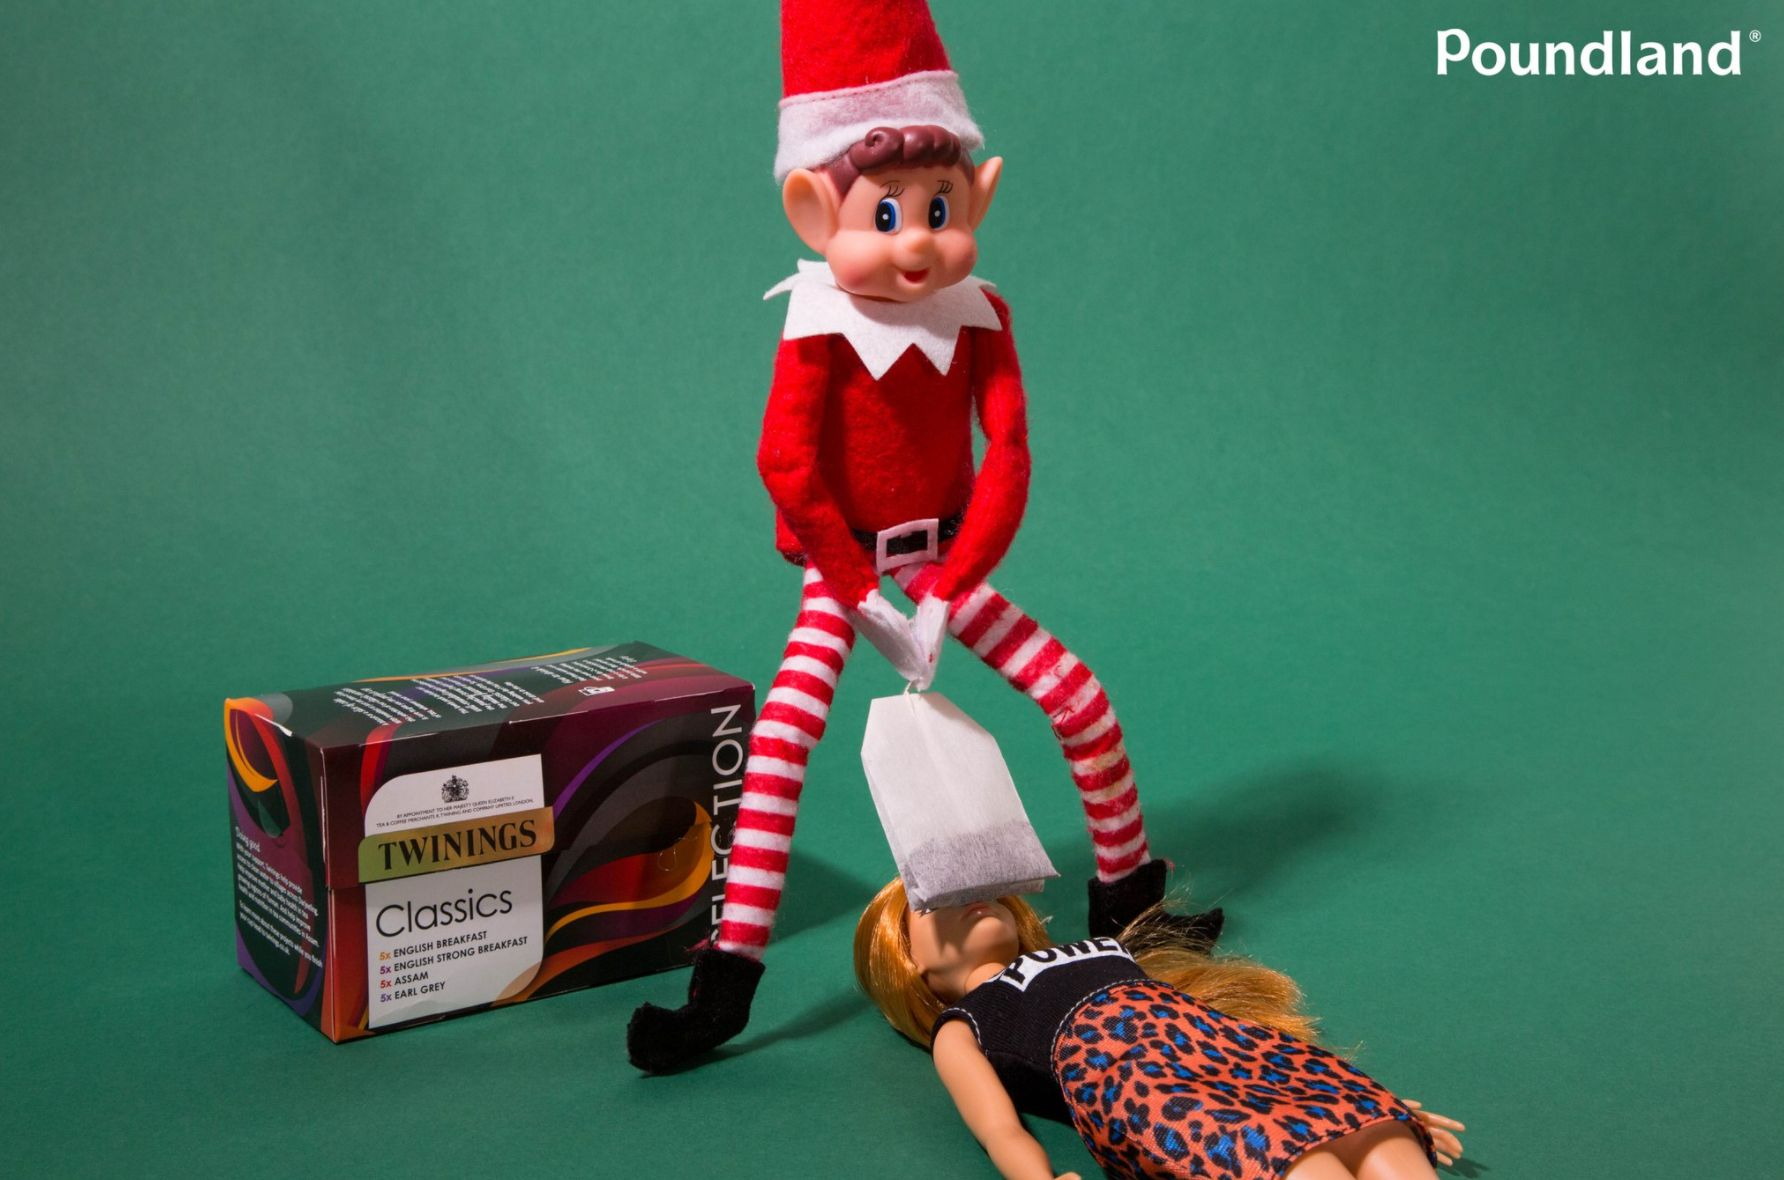 Poundland Divides Internet With NSFW Elf Advert Reenacting Sex